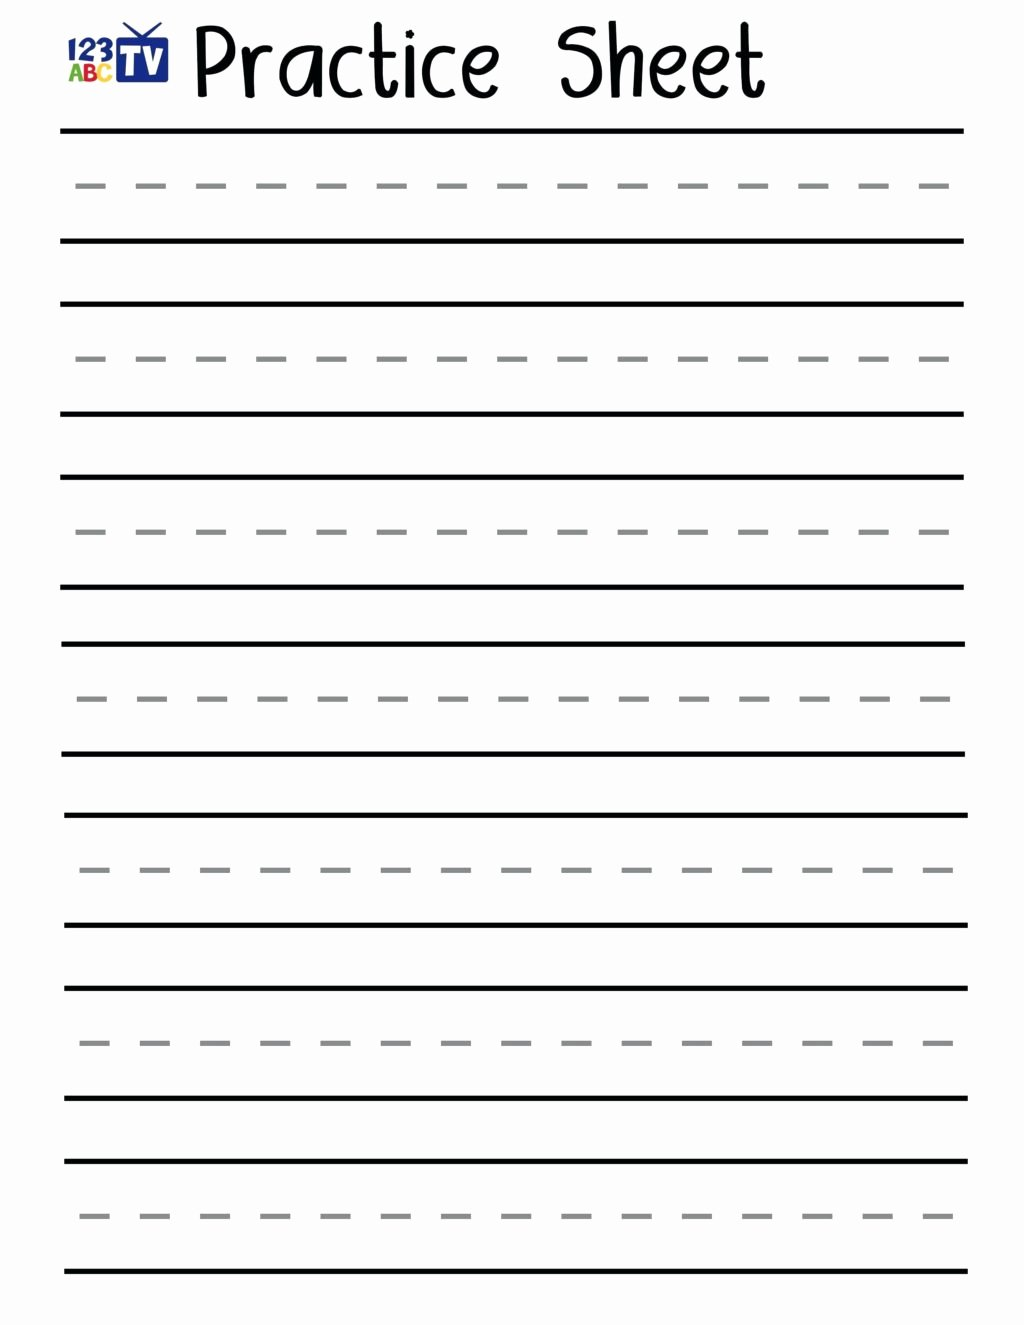 Practice Writing Worksheets for Preschoolers Awesome Worksheet Handwriting Sheets Maker Barka Free Printable